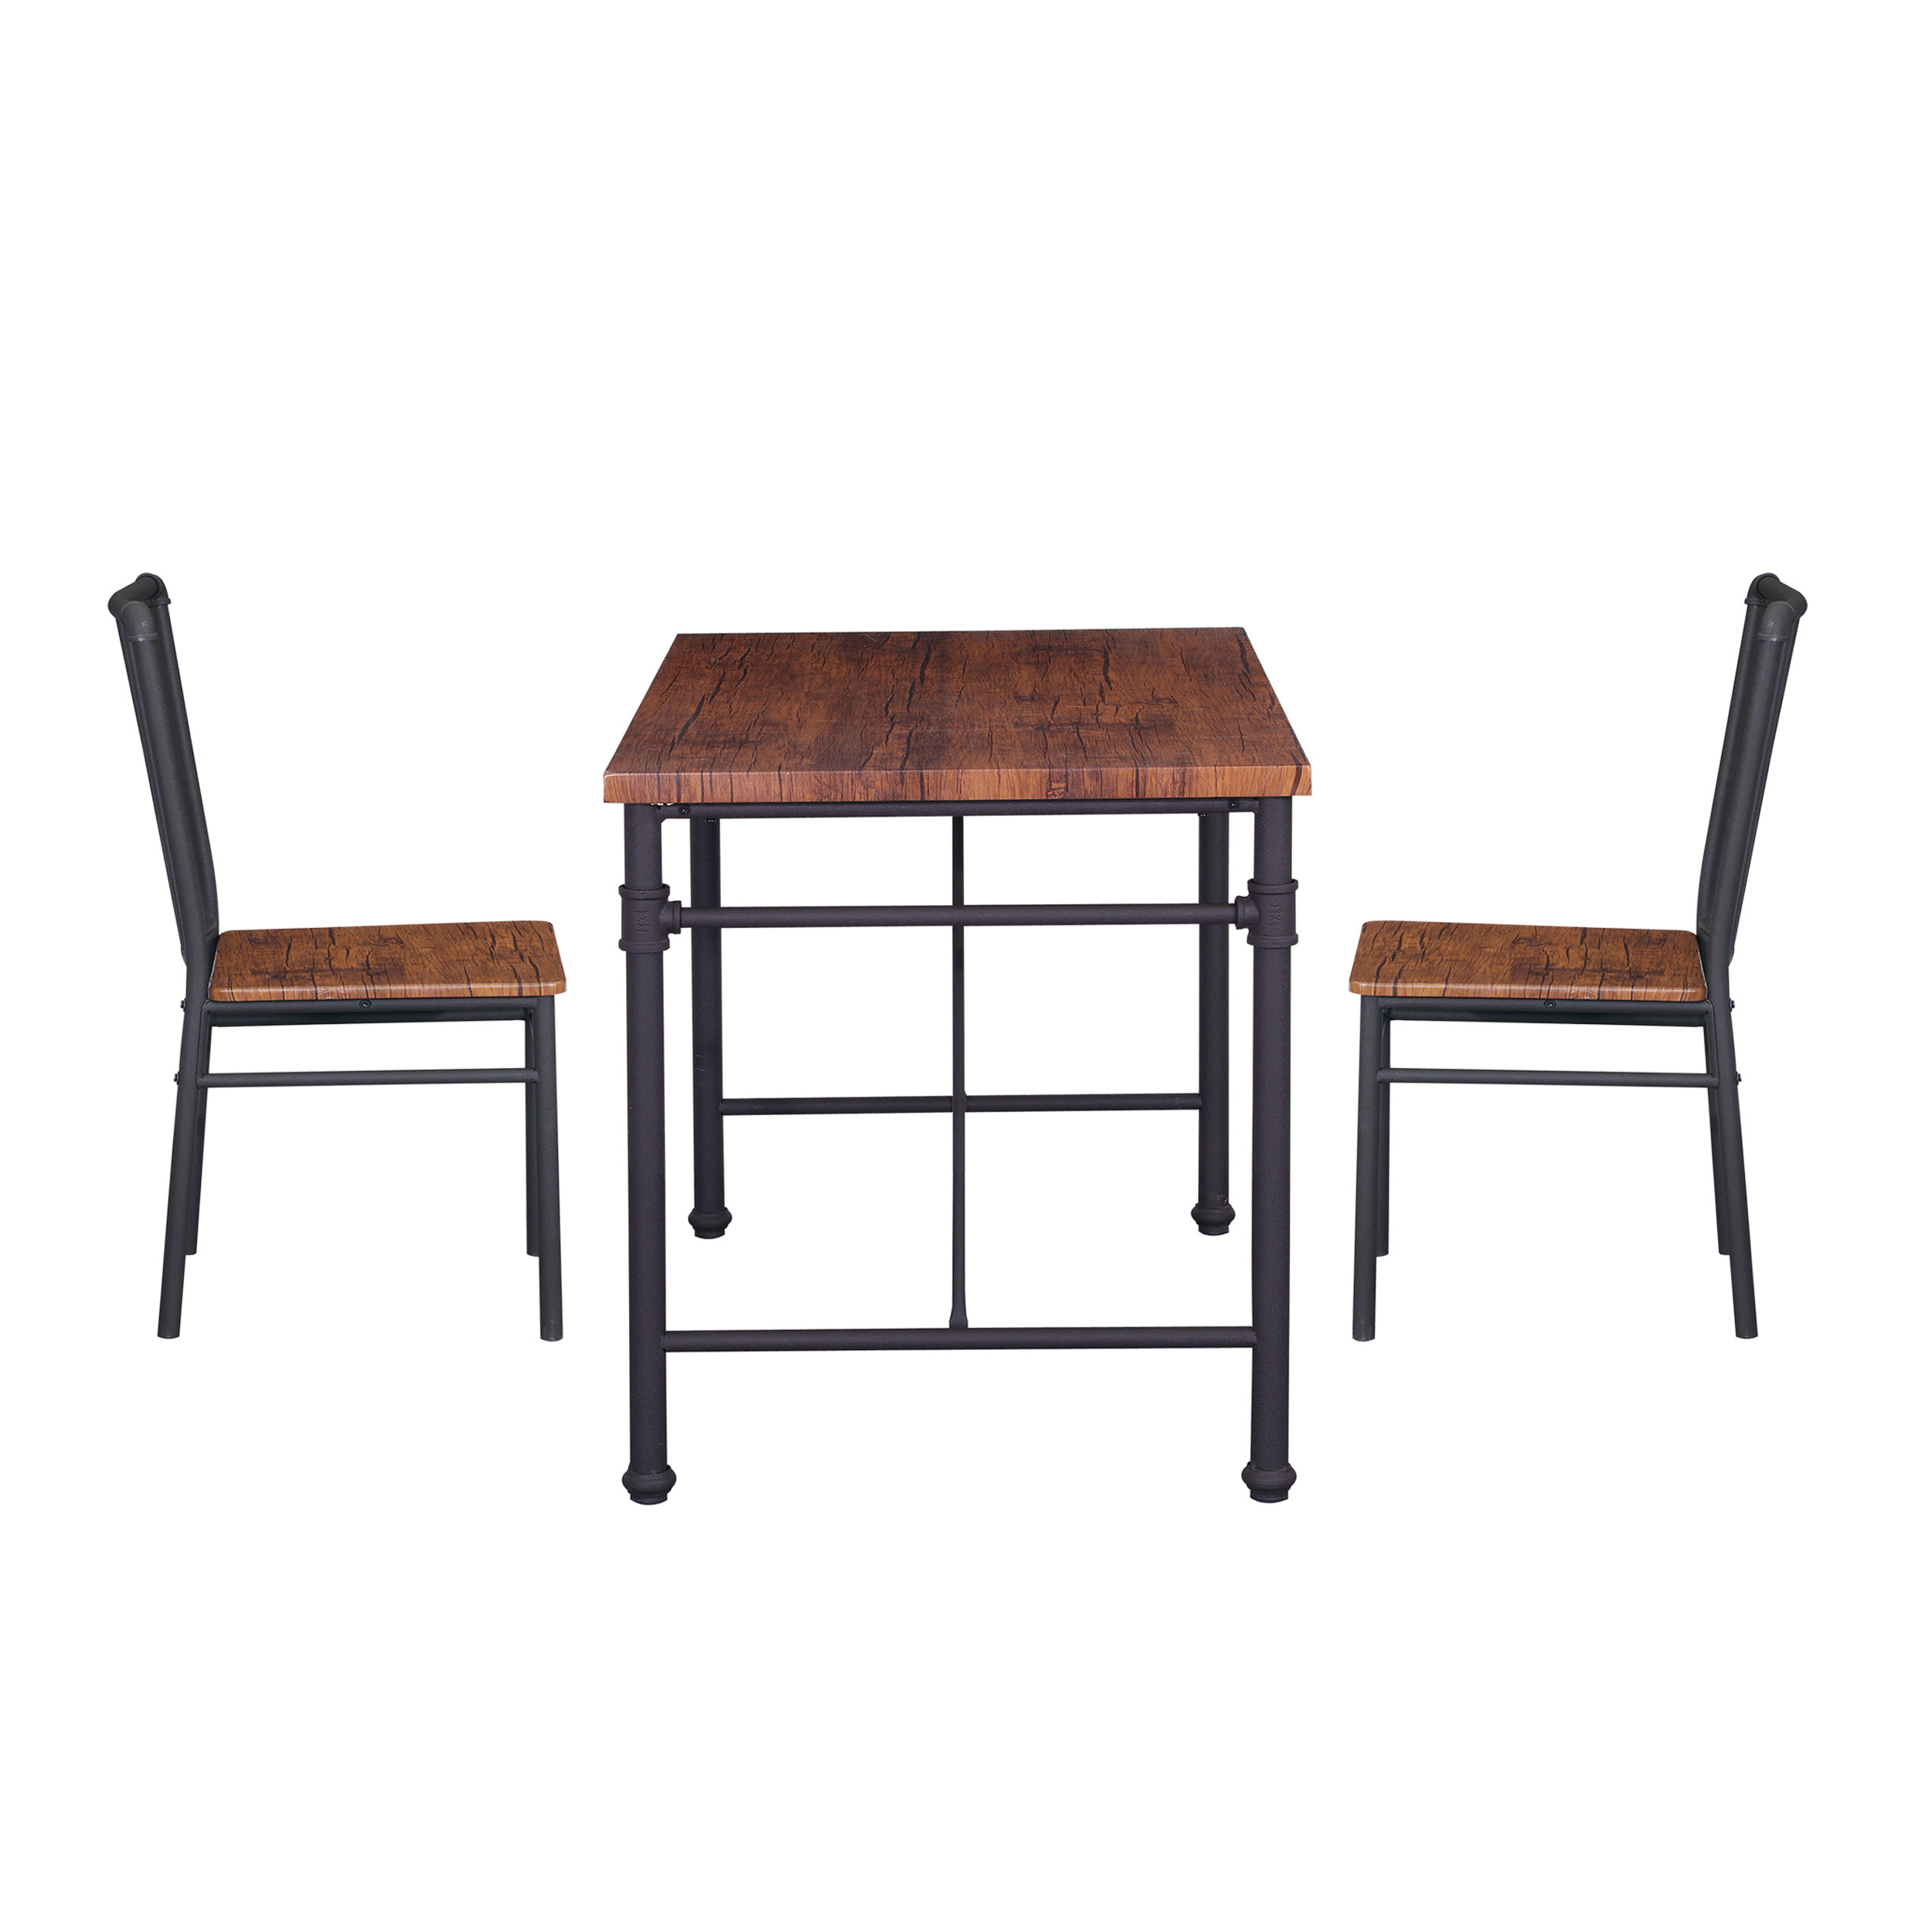 Shepparton Vintage 3 Piece Dining Sets With Regard To Well Known Williston Forge Patterson 3 Piece Chairs Set (View 9 of 25)